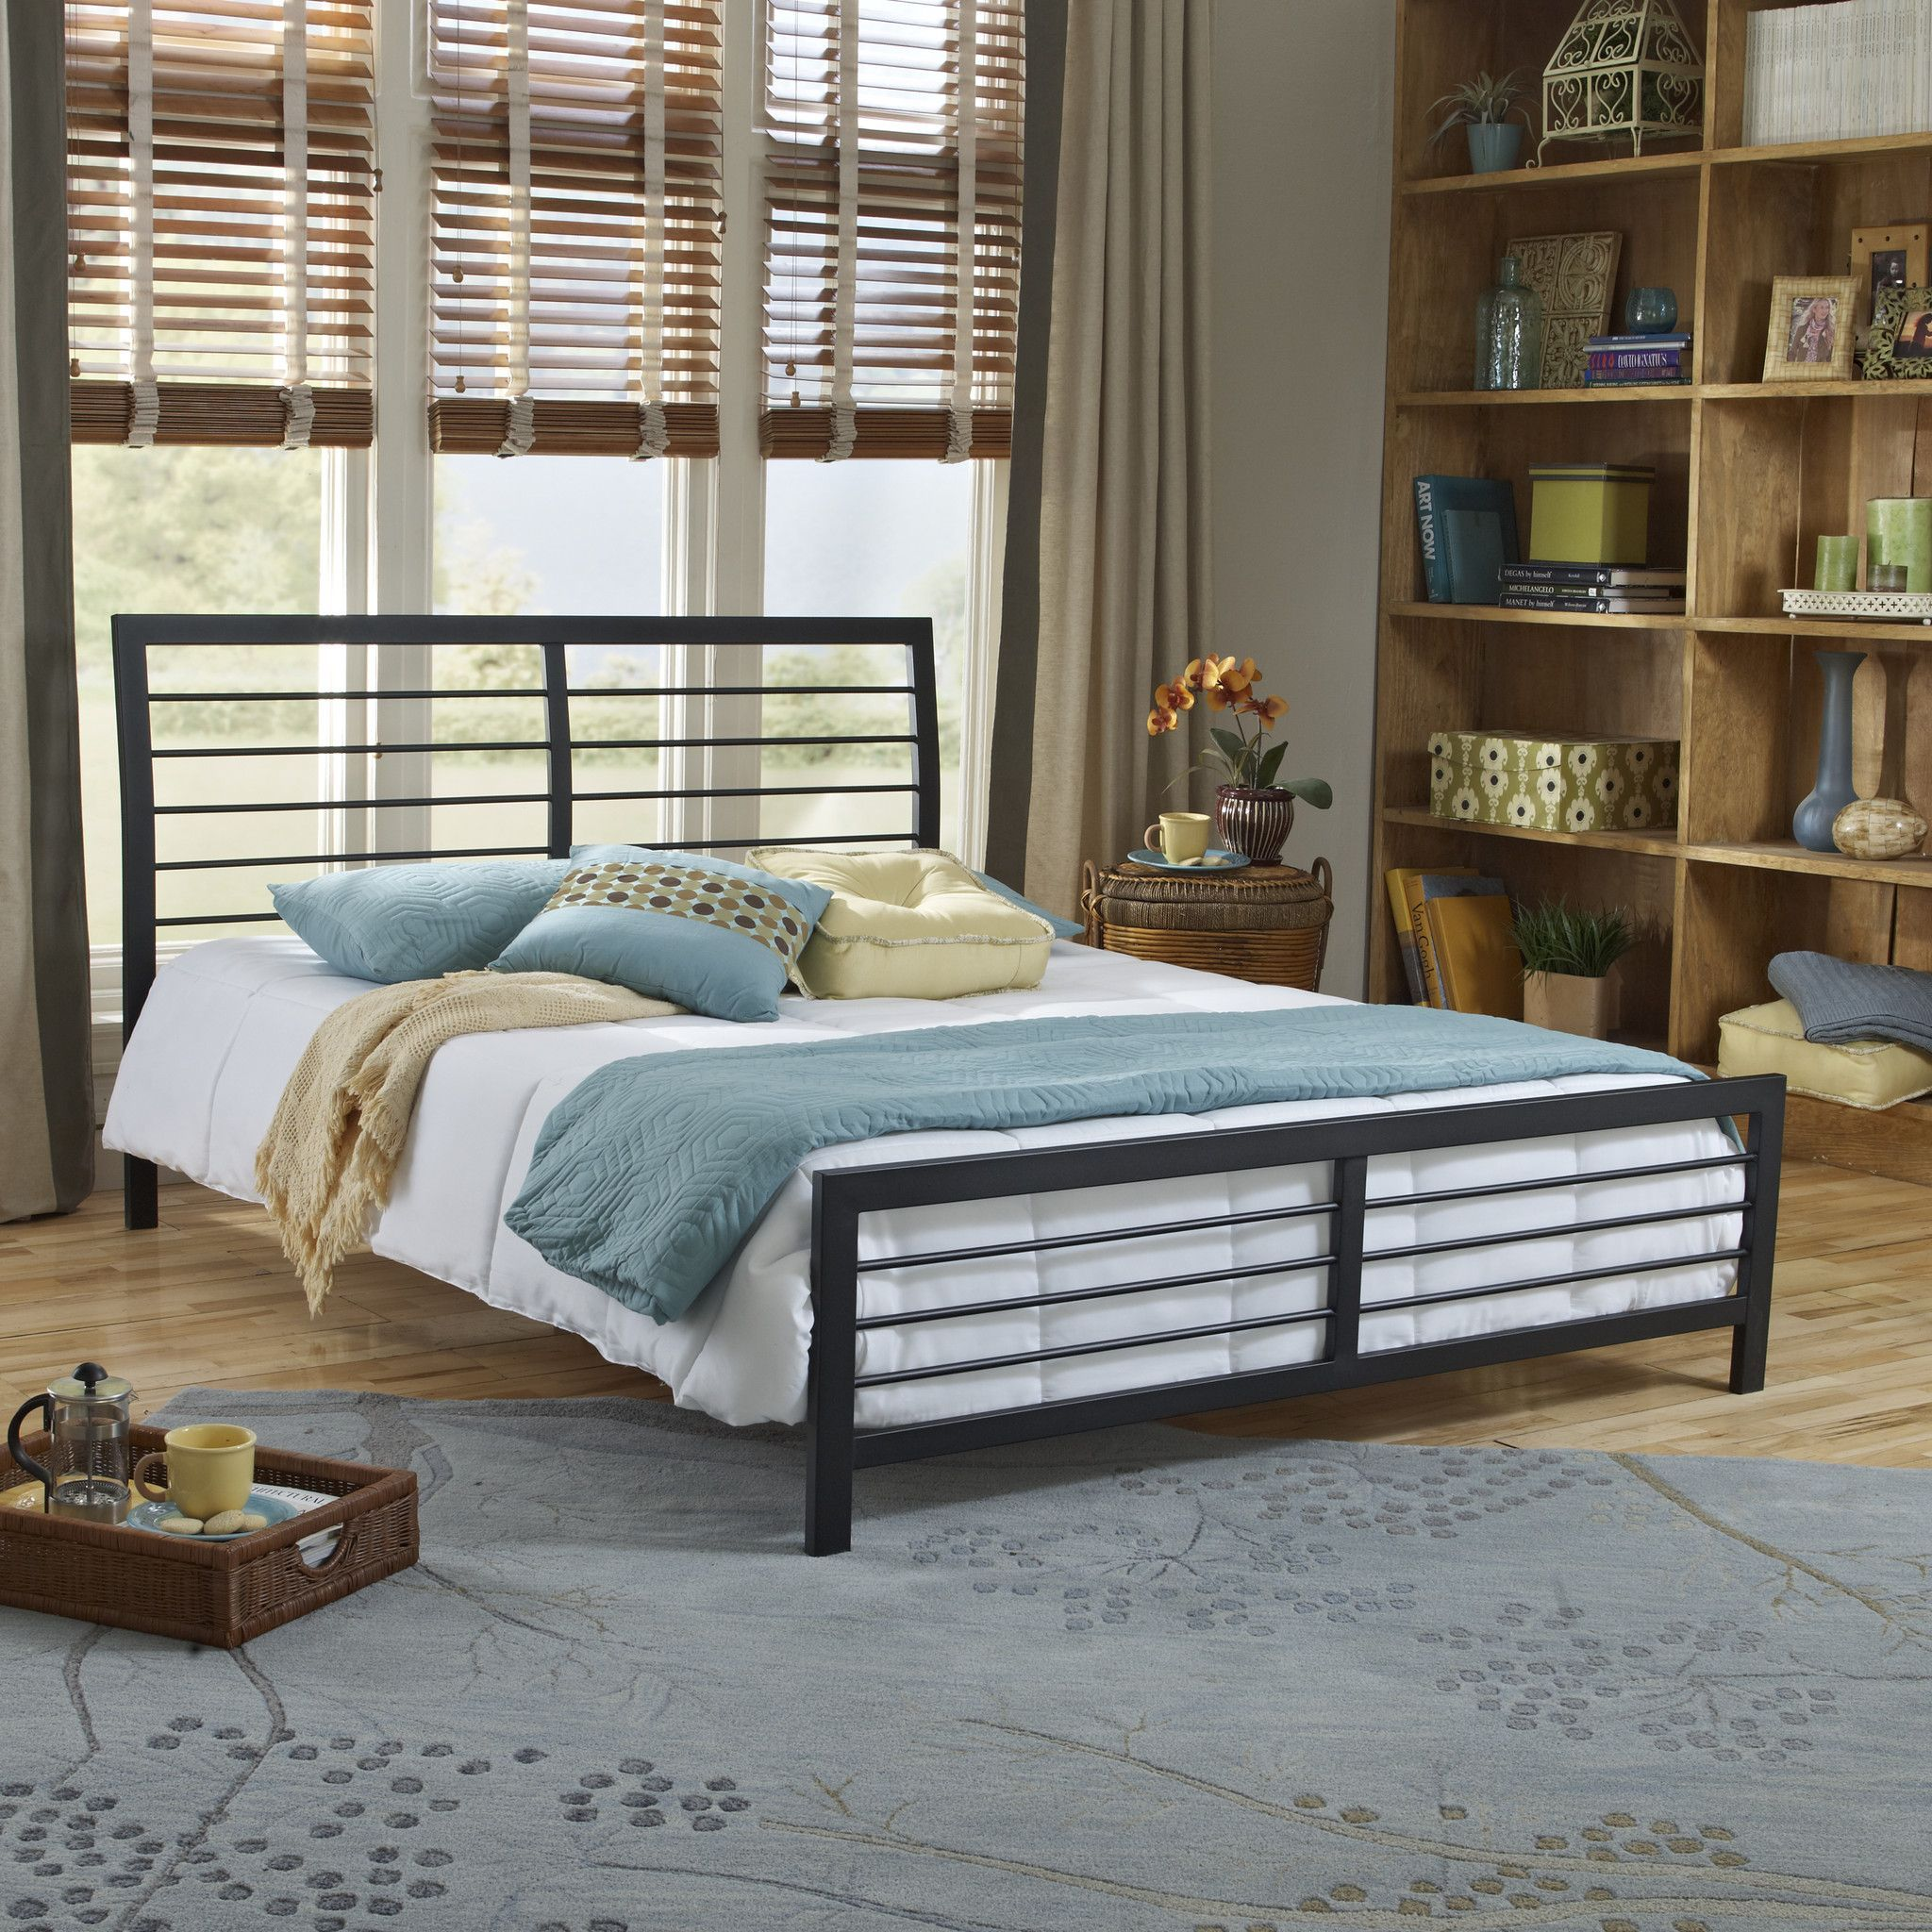 tiffany metal platform bed studio ideas pinterest metal